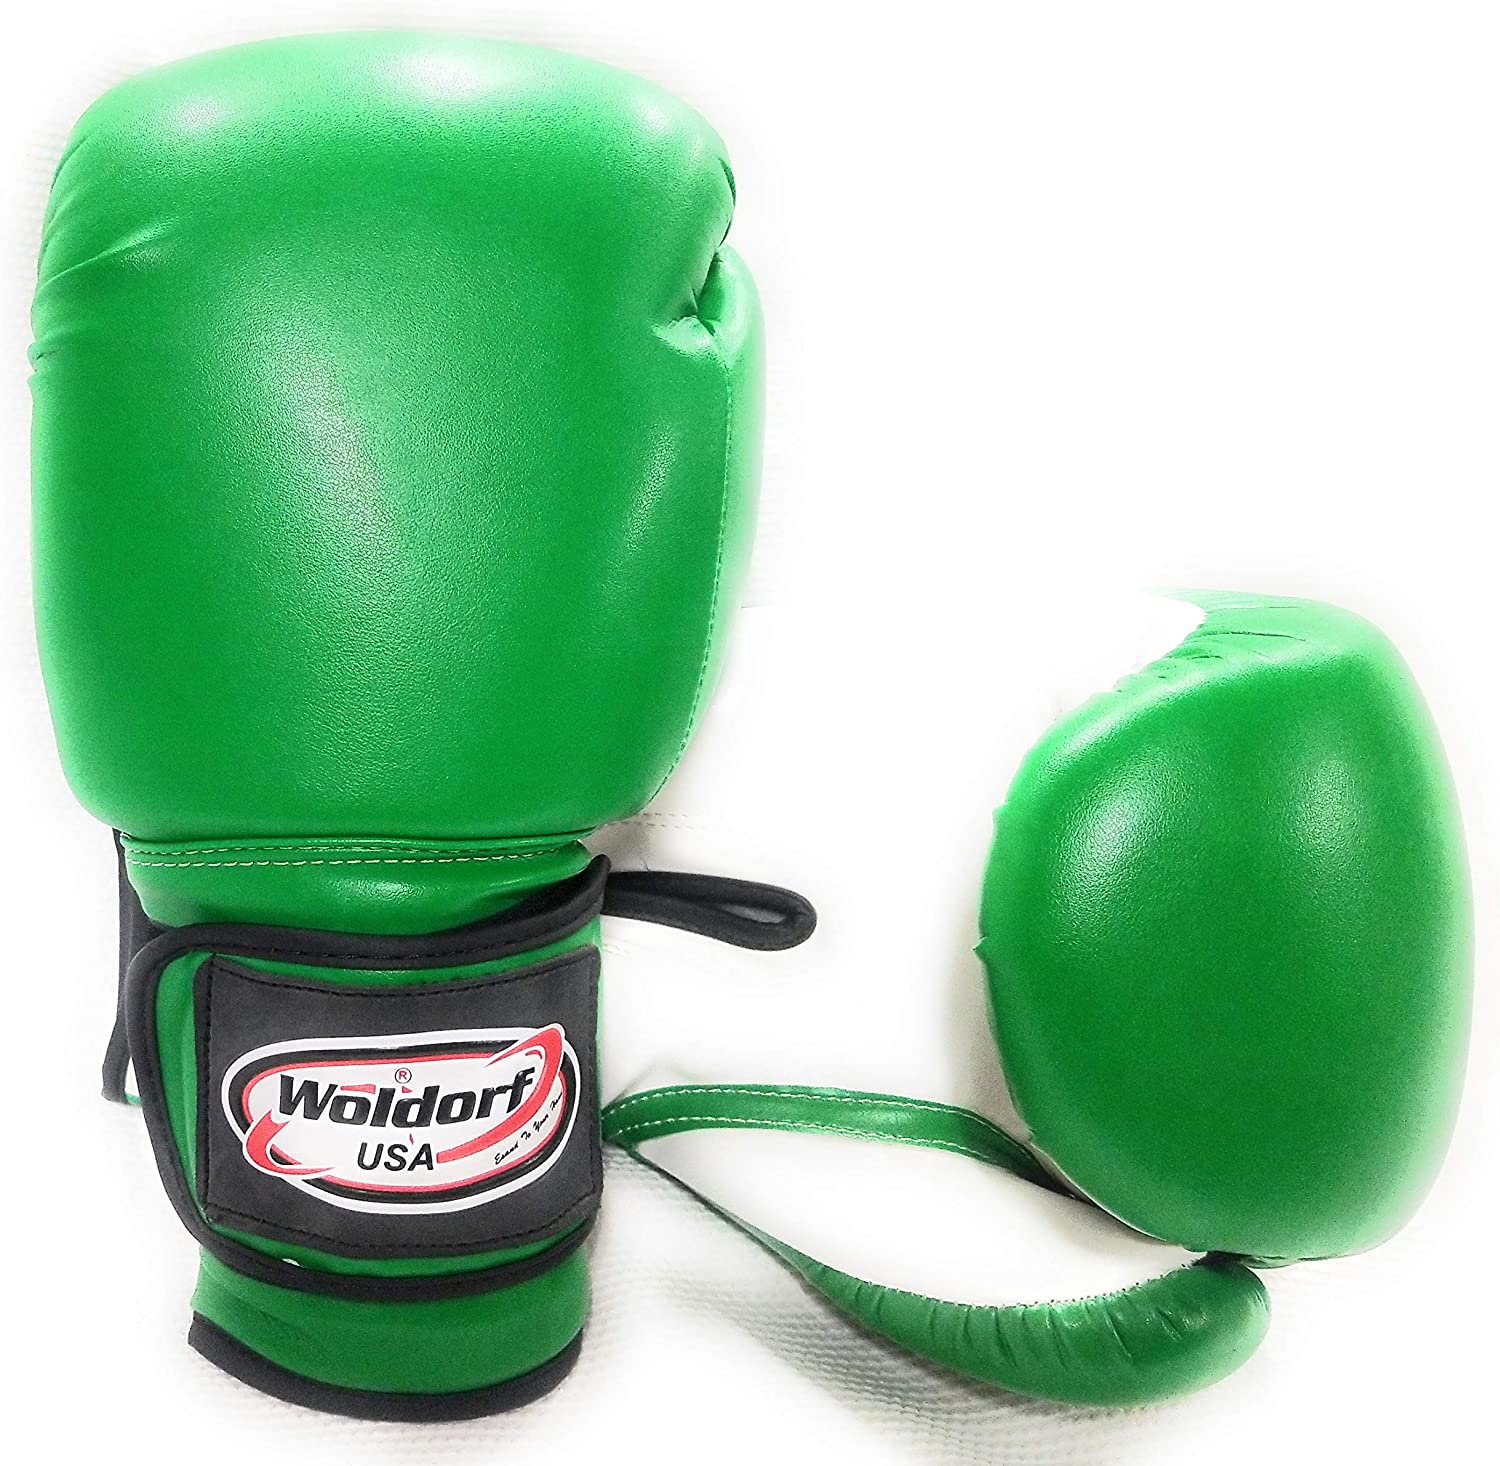 Woldorf USA Boxing Bag Gloves Sparring MMA Fighting Kickboxing Muay Thai Green